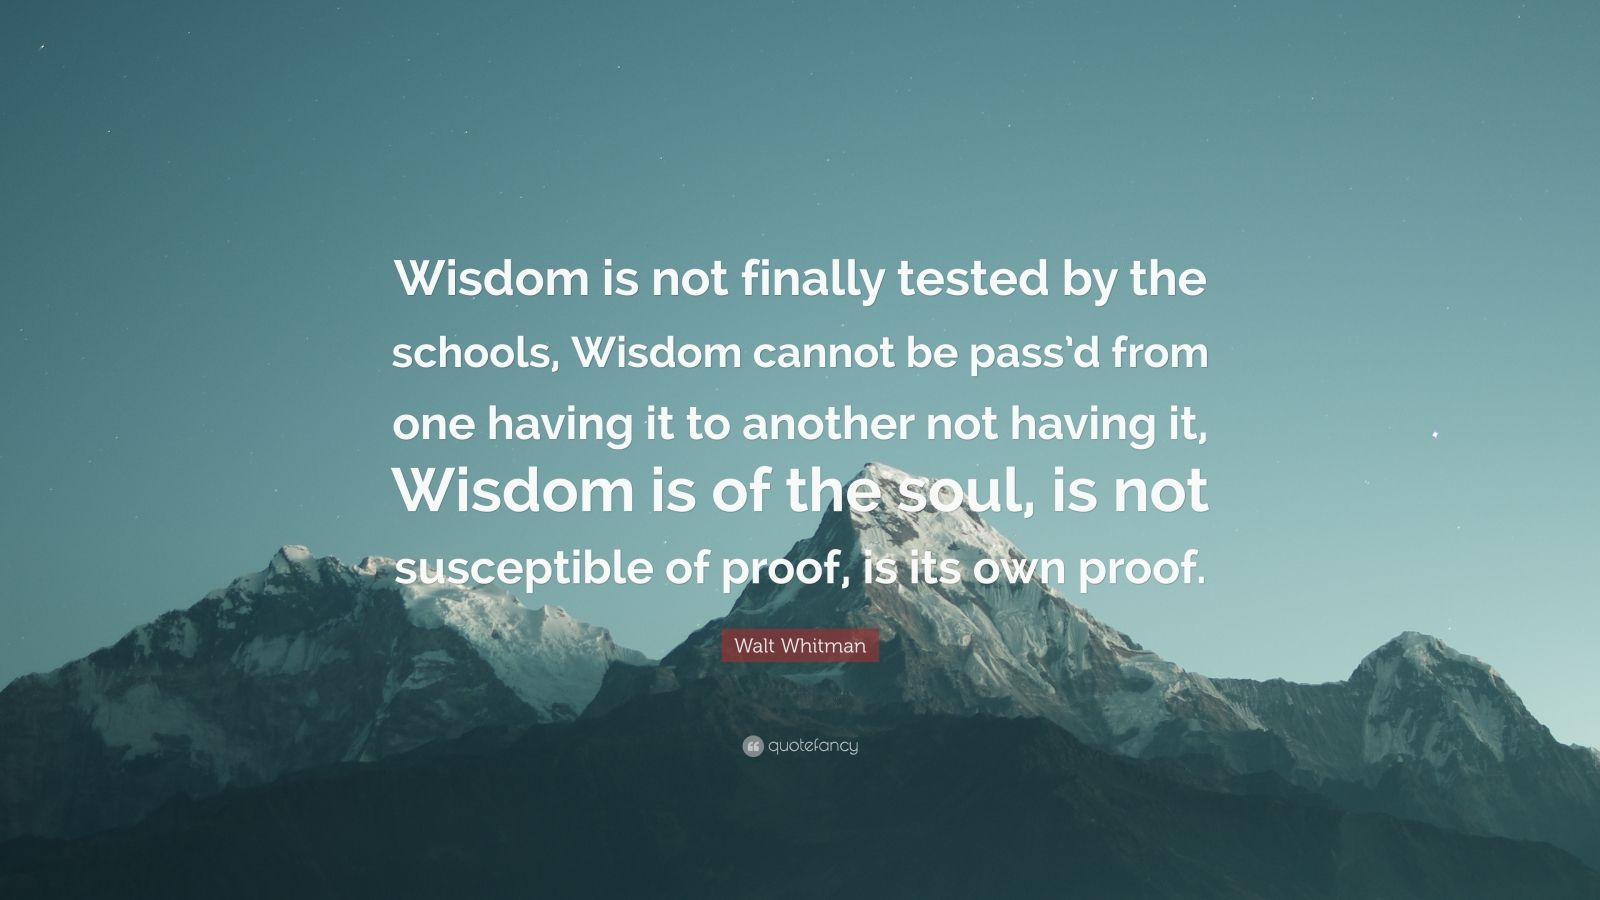 """Walt Whitman Quote: """"Wisdom is not finally tested by the schools, Wisdom cannot be pass'd from one having it to another not having it, Wisdom is of the soul, is not susceptible of proof, is its own proof."""""""